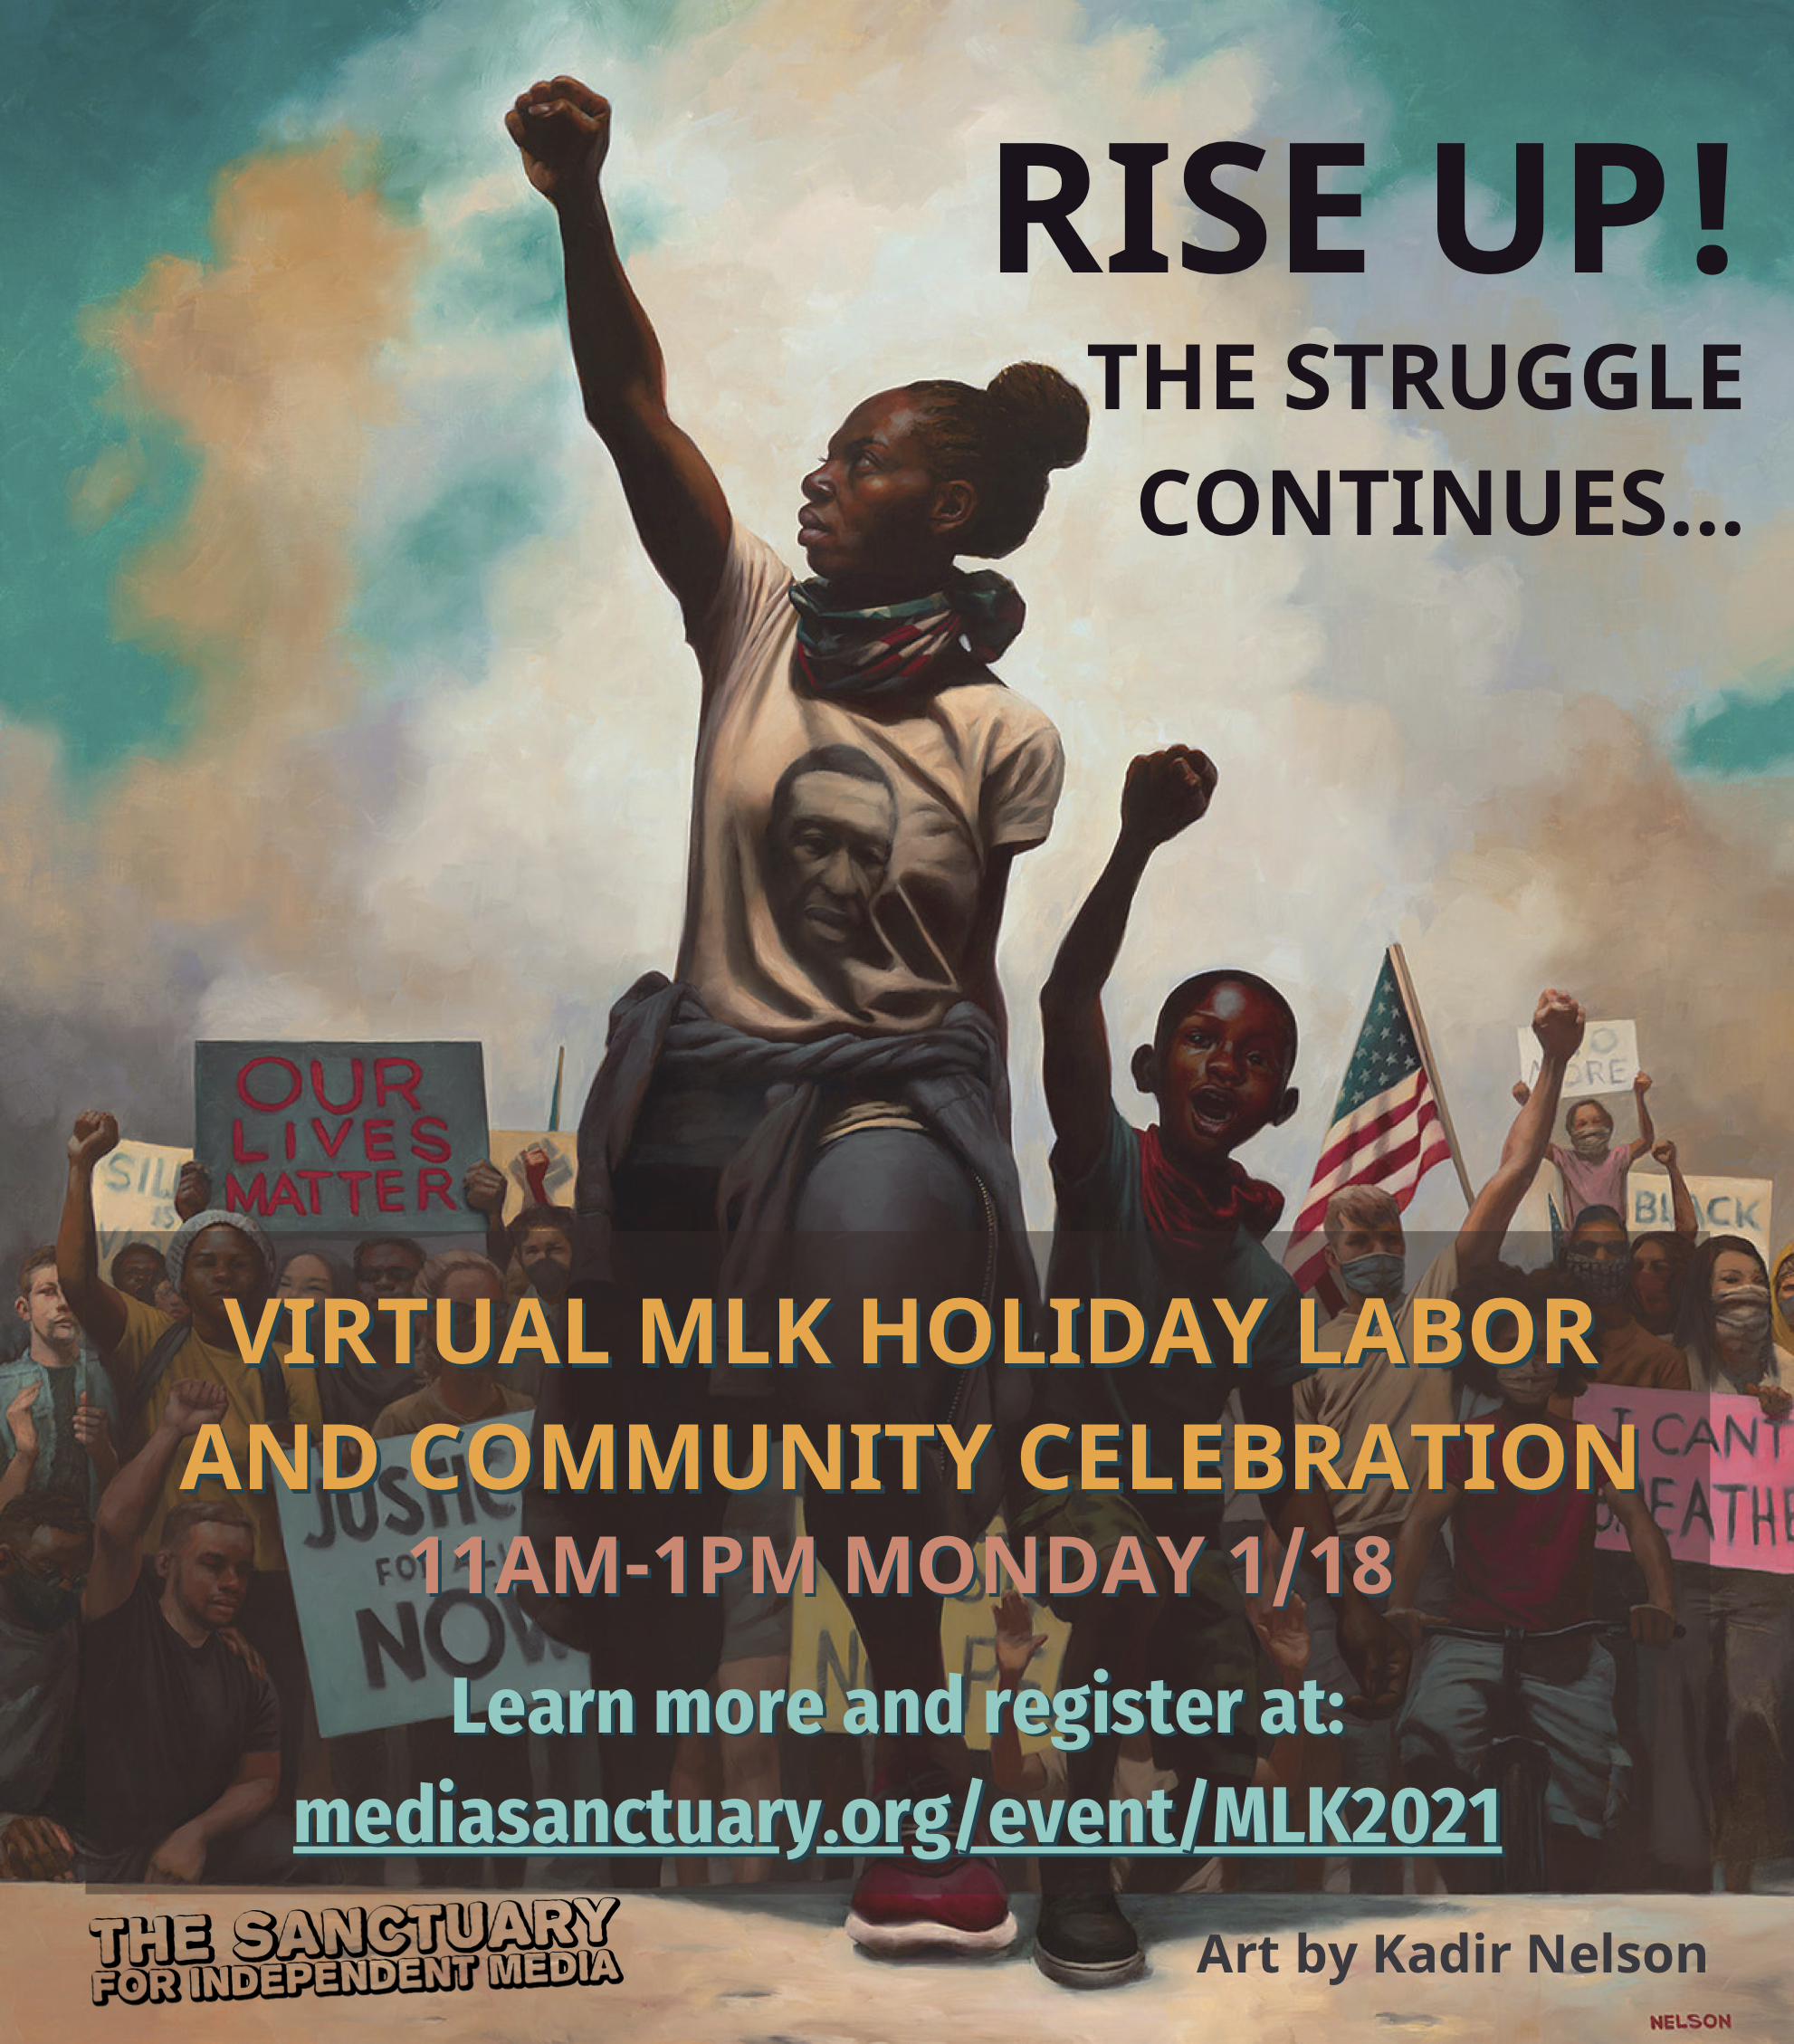 MLK Holiday Labor and Community Celebration: Rise Up! The Struggle Continues...